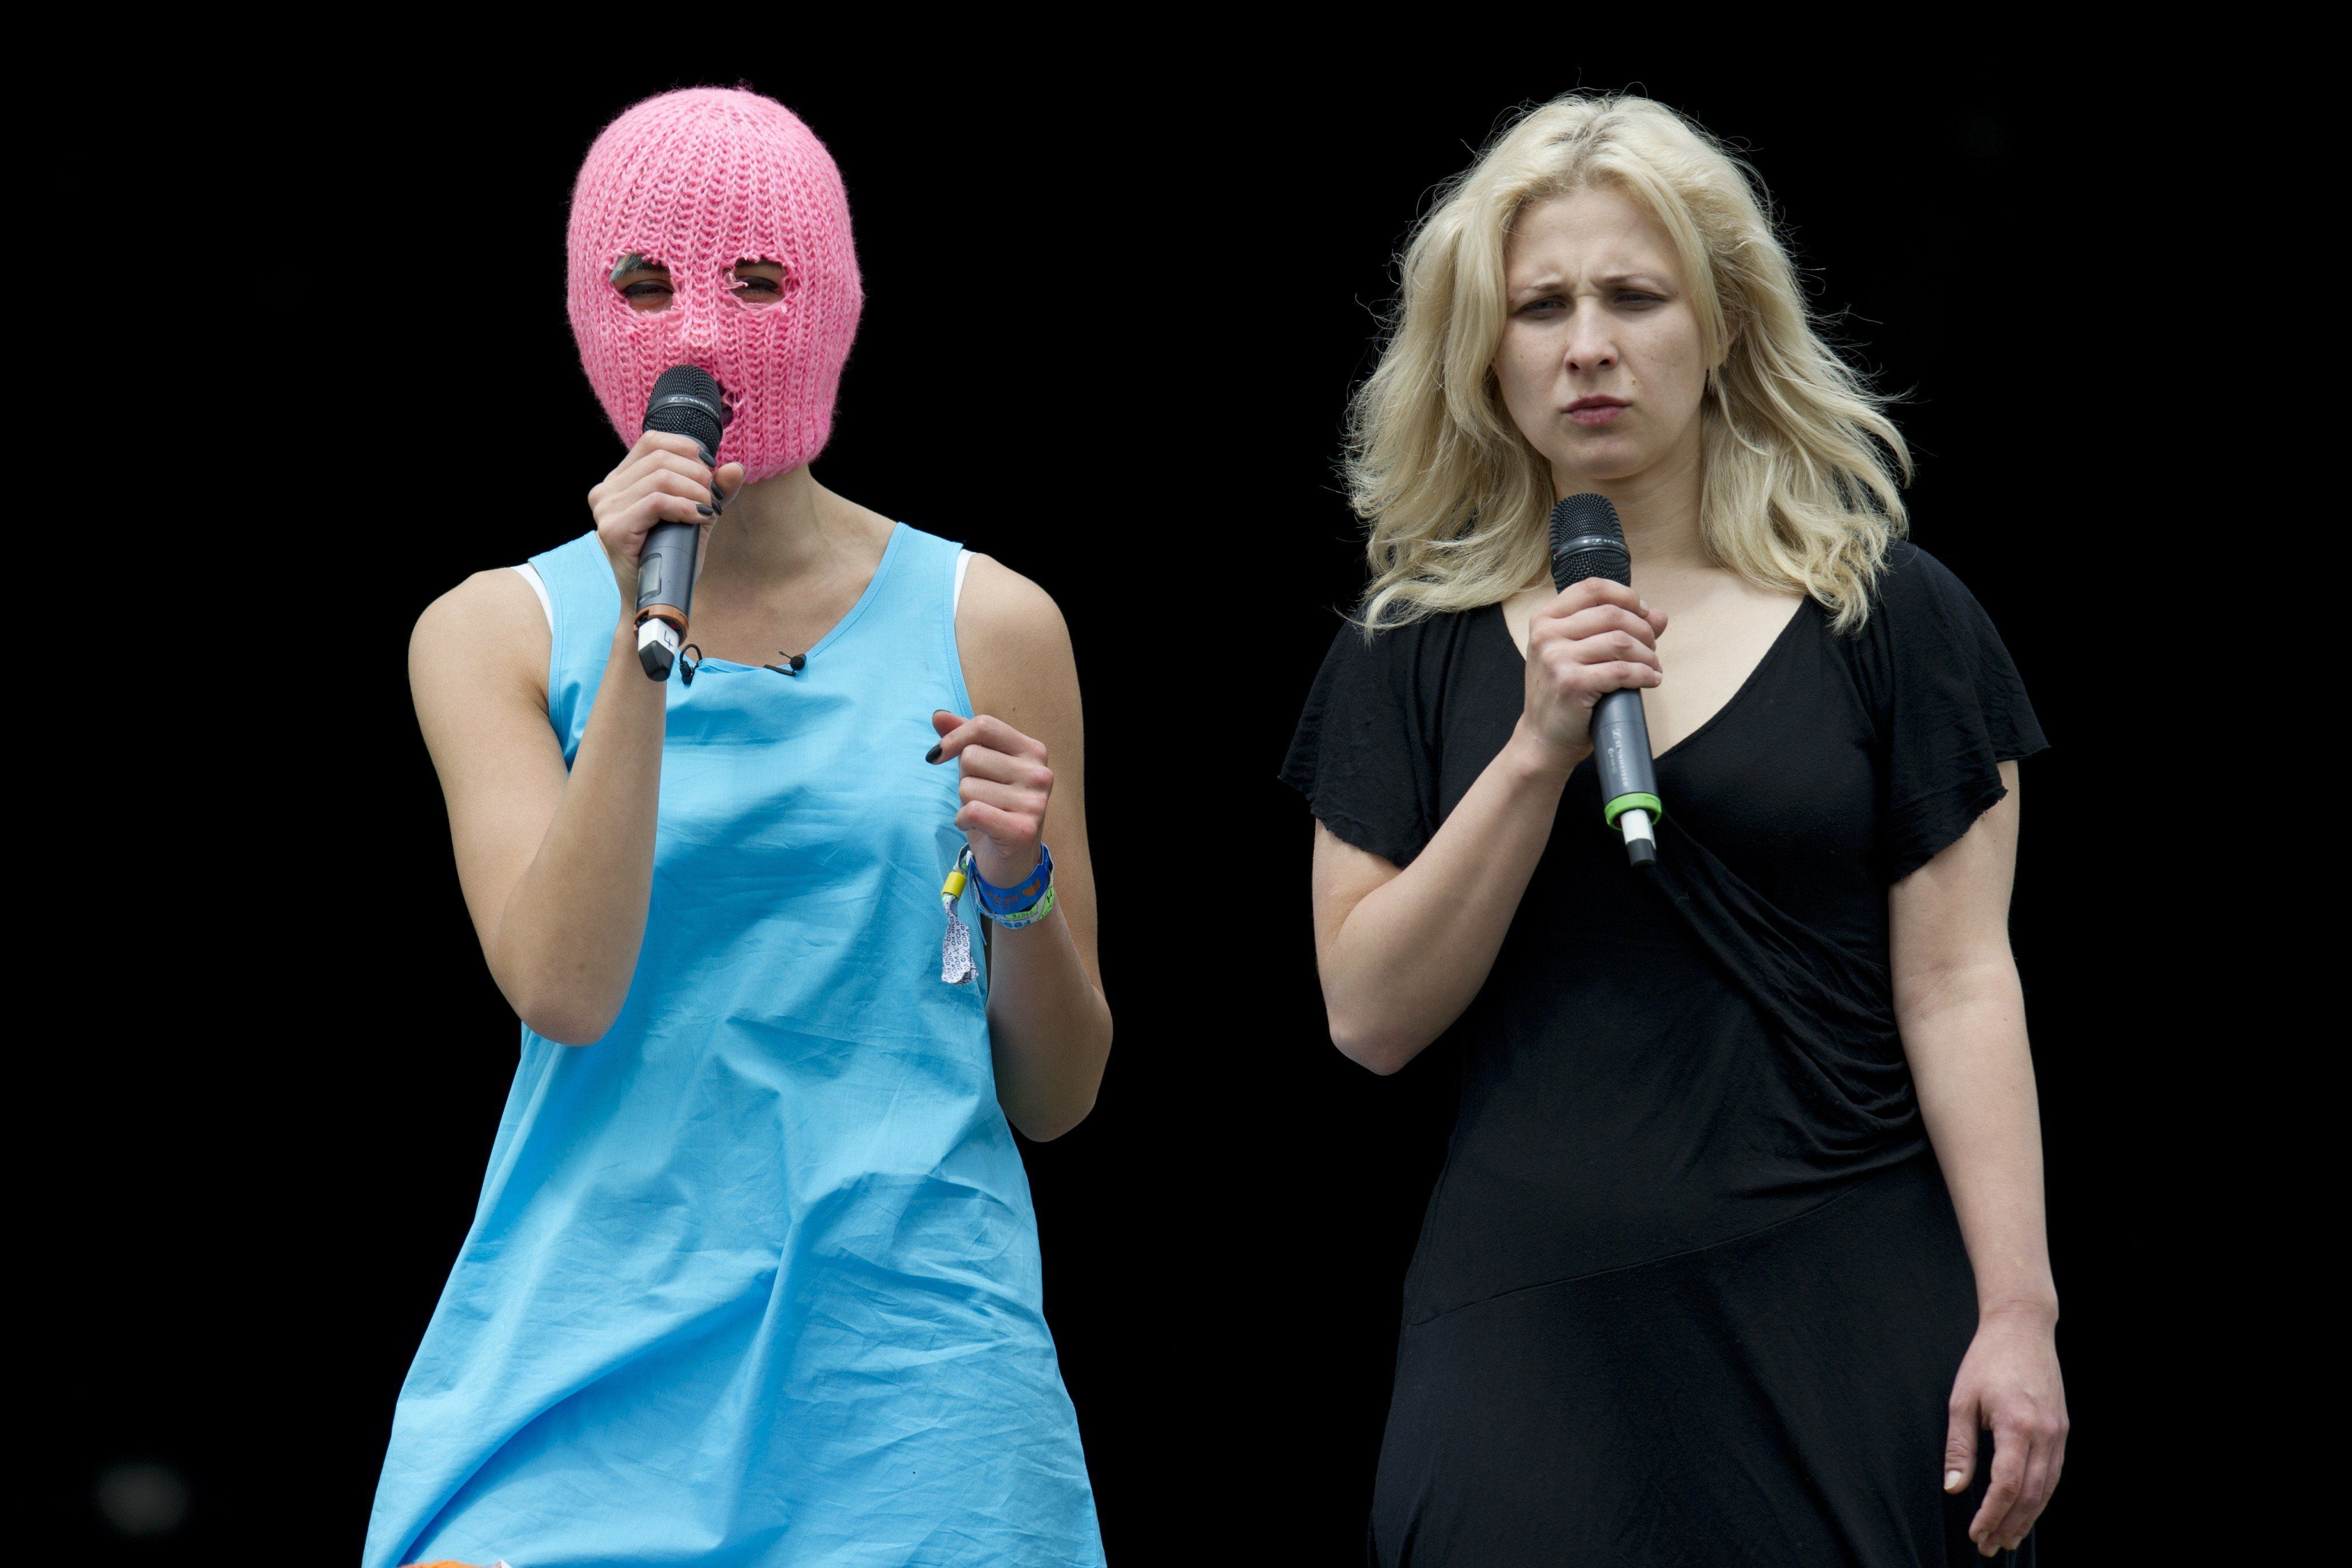 Russian activists Nadezhda Tolokonnikova (L) and Maria Alyokhina and members of Russian feminist punk rock protest group Pussy Riot address the crowd from on top of a Russian military vehicle at The Park stage on the first official day of the Glastonbury Festival of Music and Performing Arts on Worthy Farm near the village of Pilton in Somerset, South West England, on June 26, 2015.    AFP PHOTO / OLI SCARFF        (Photo credit should read OLI SCARFF/AFP/Getty Images)